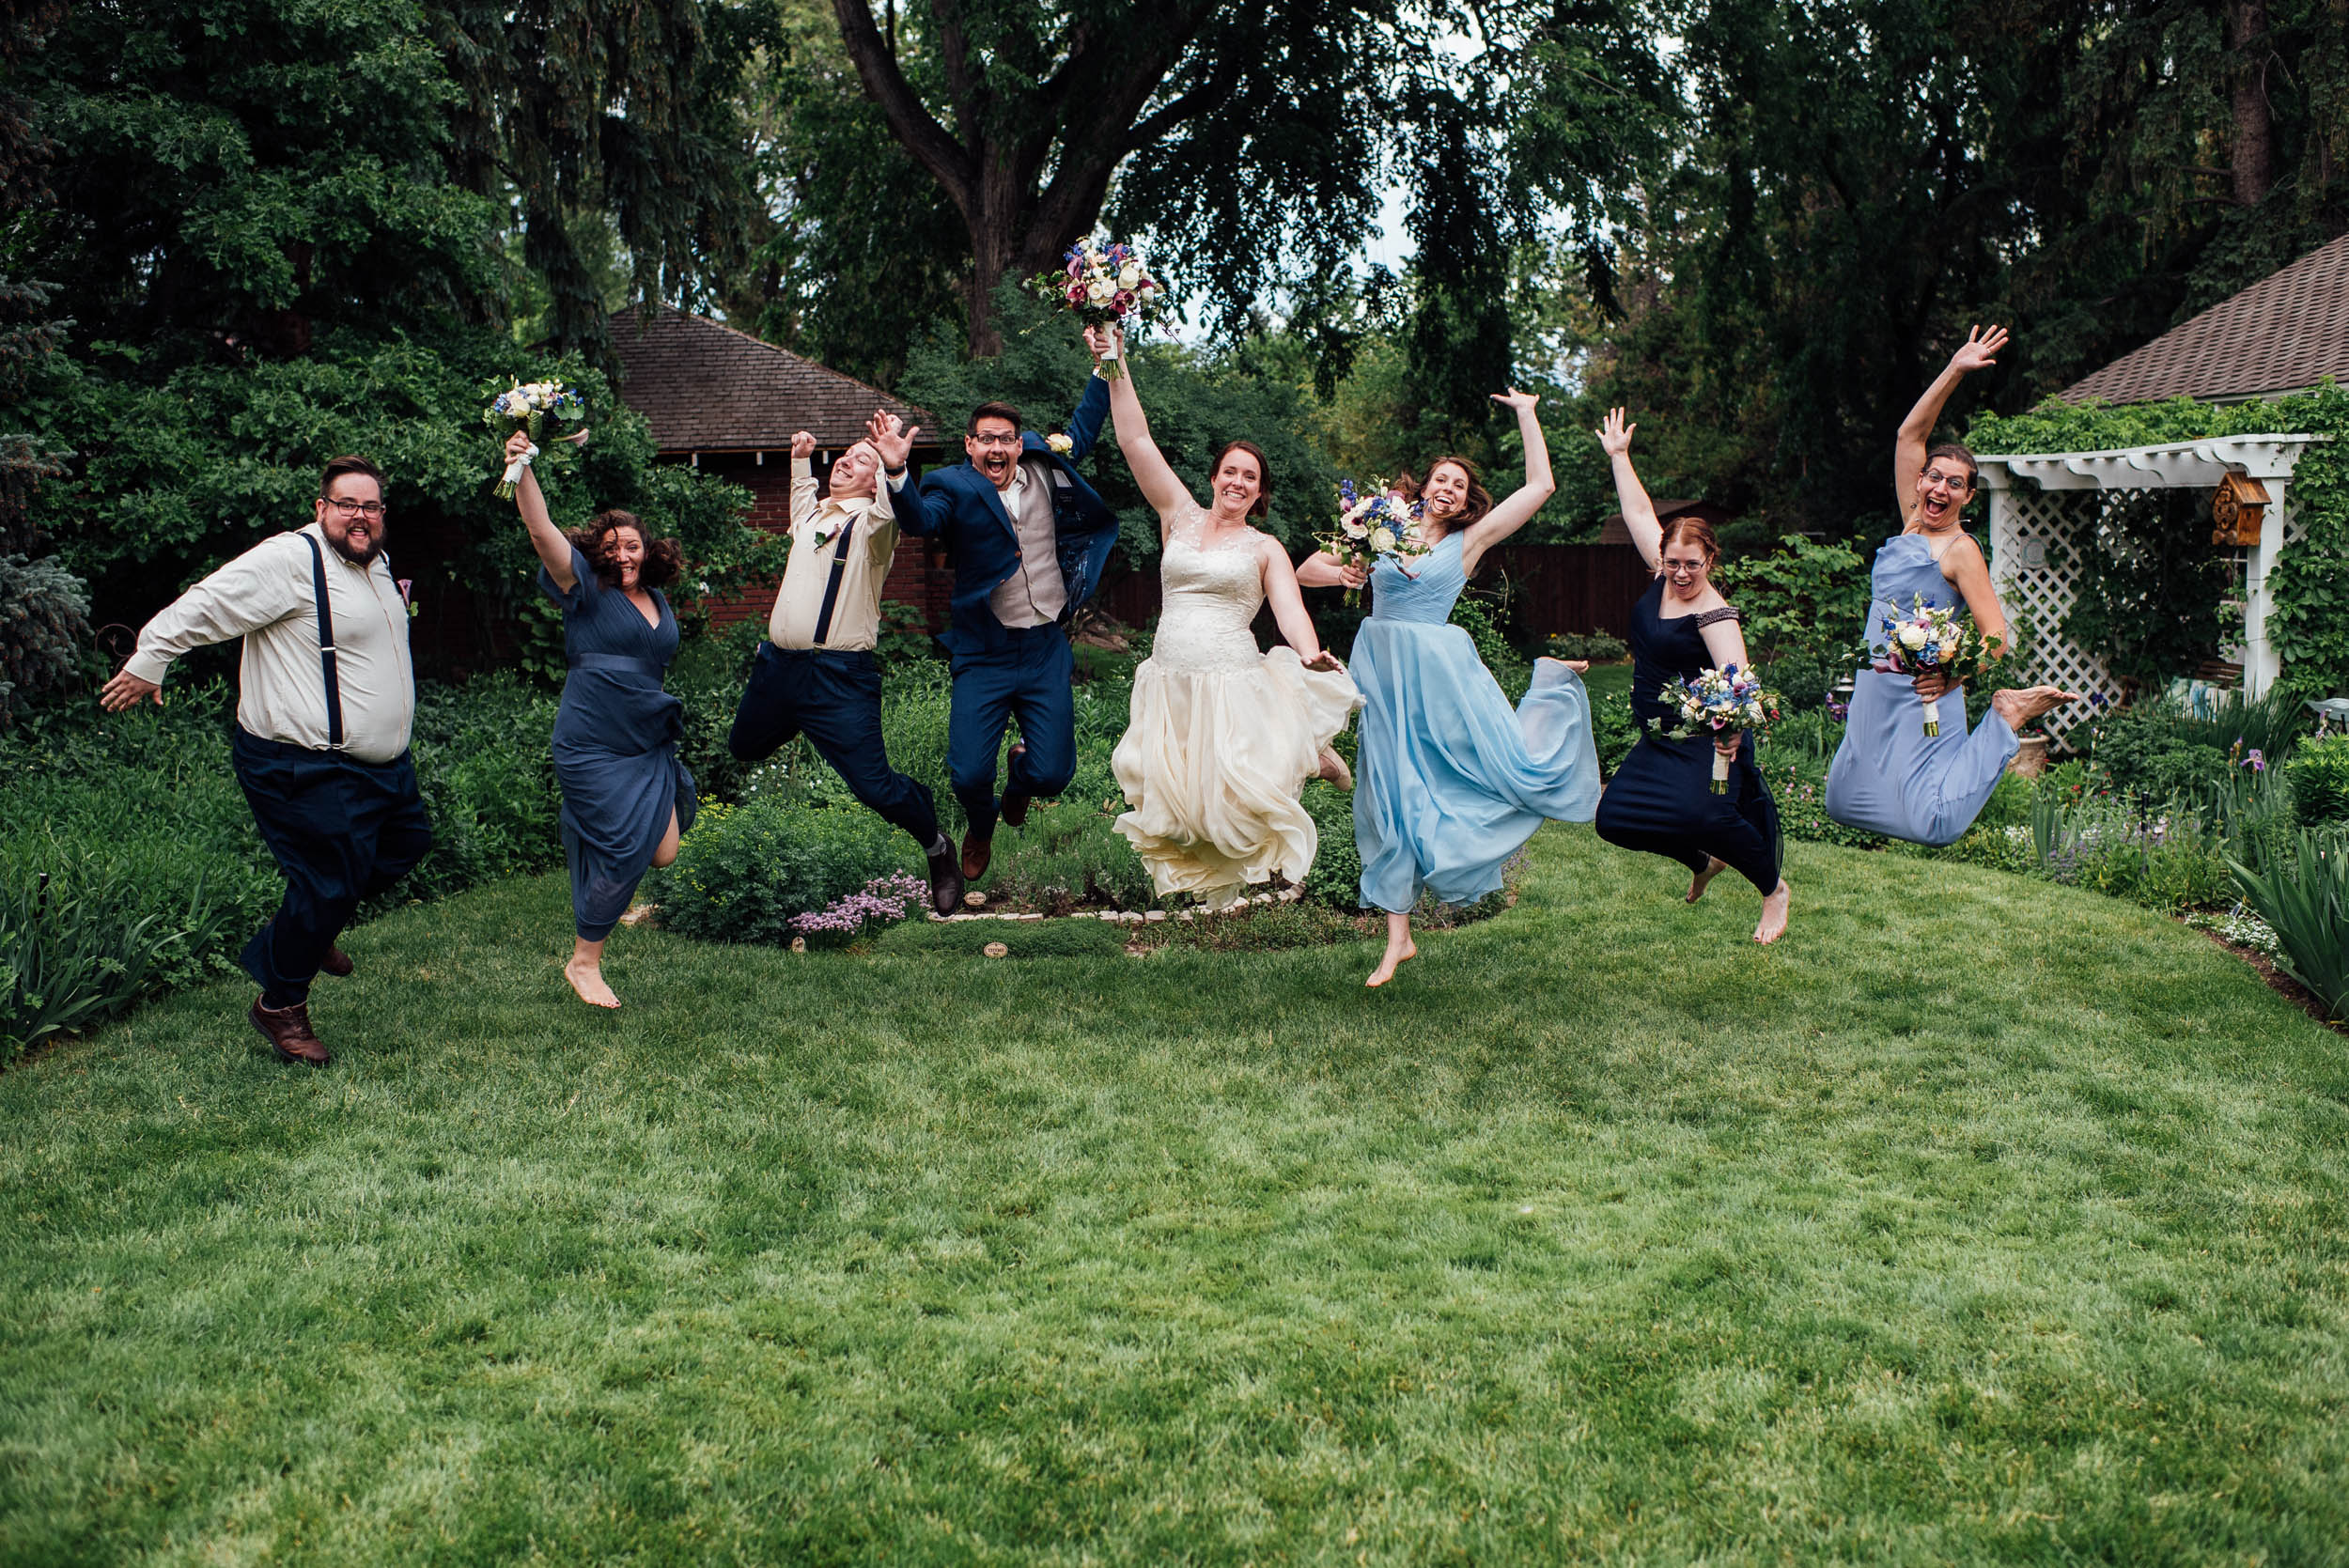 Colorado-Backyard-Wedding-Photographer-49.jpg